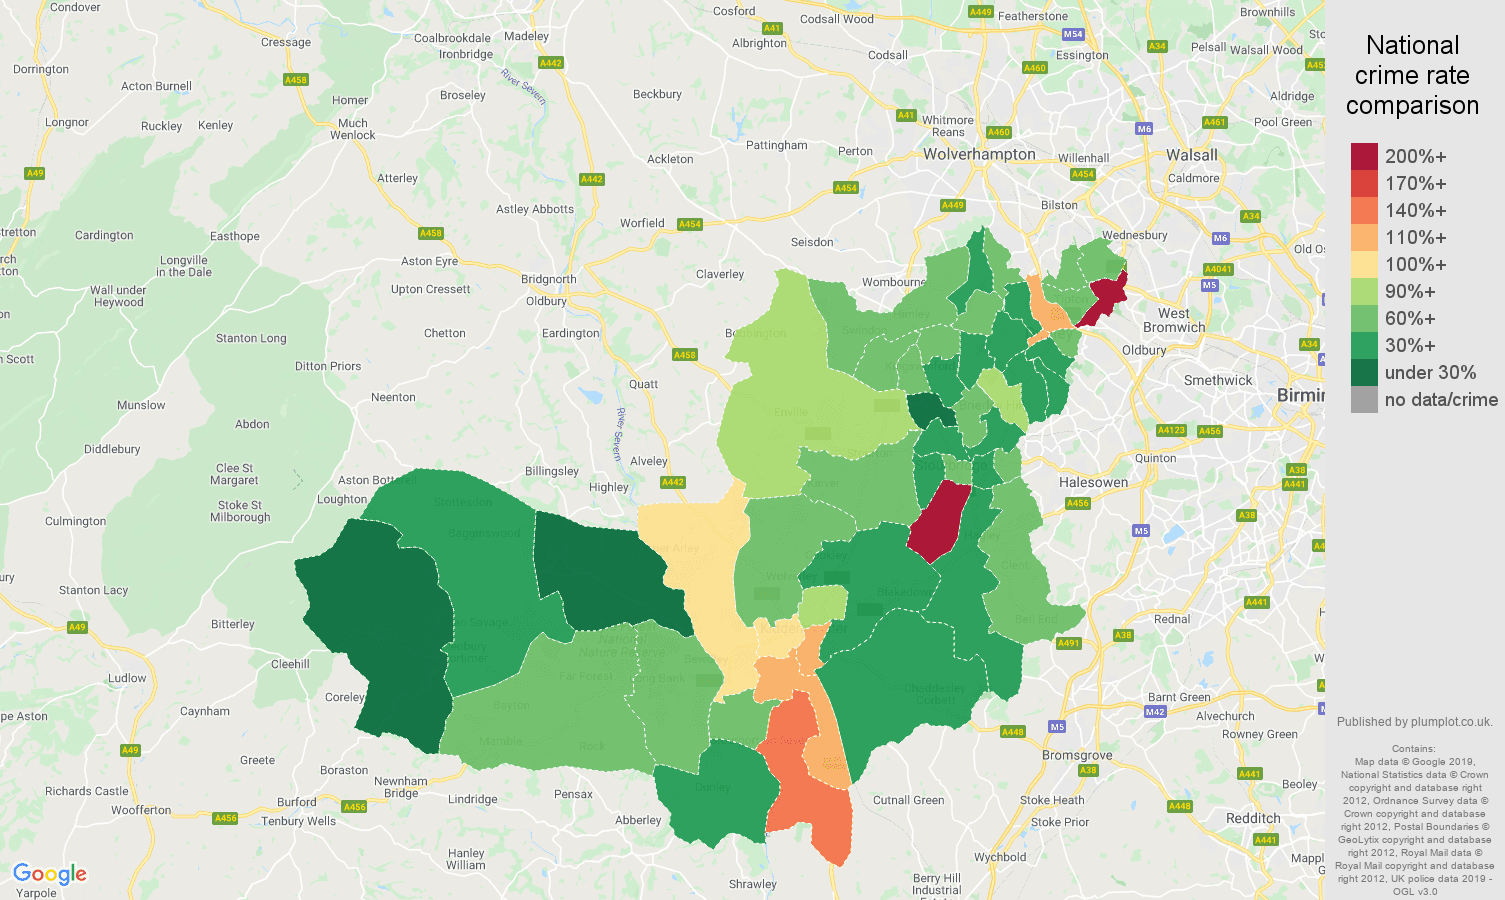 Dudley other theft crime rate comparison map